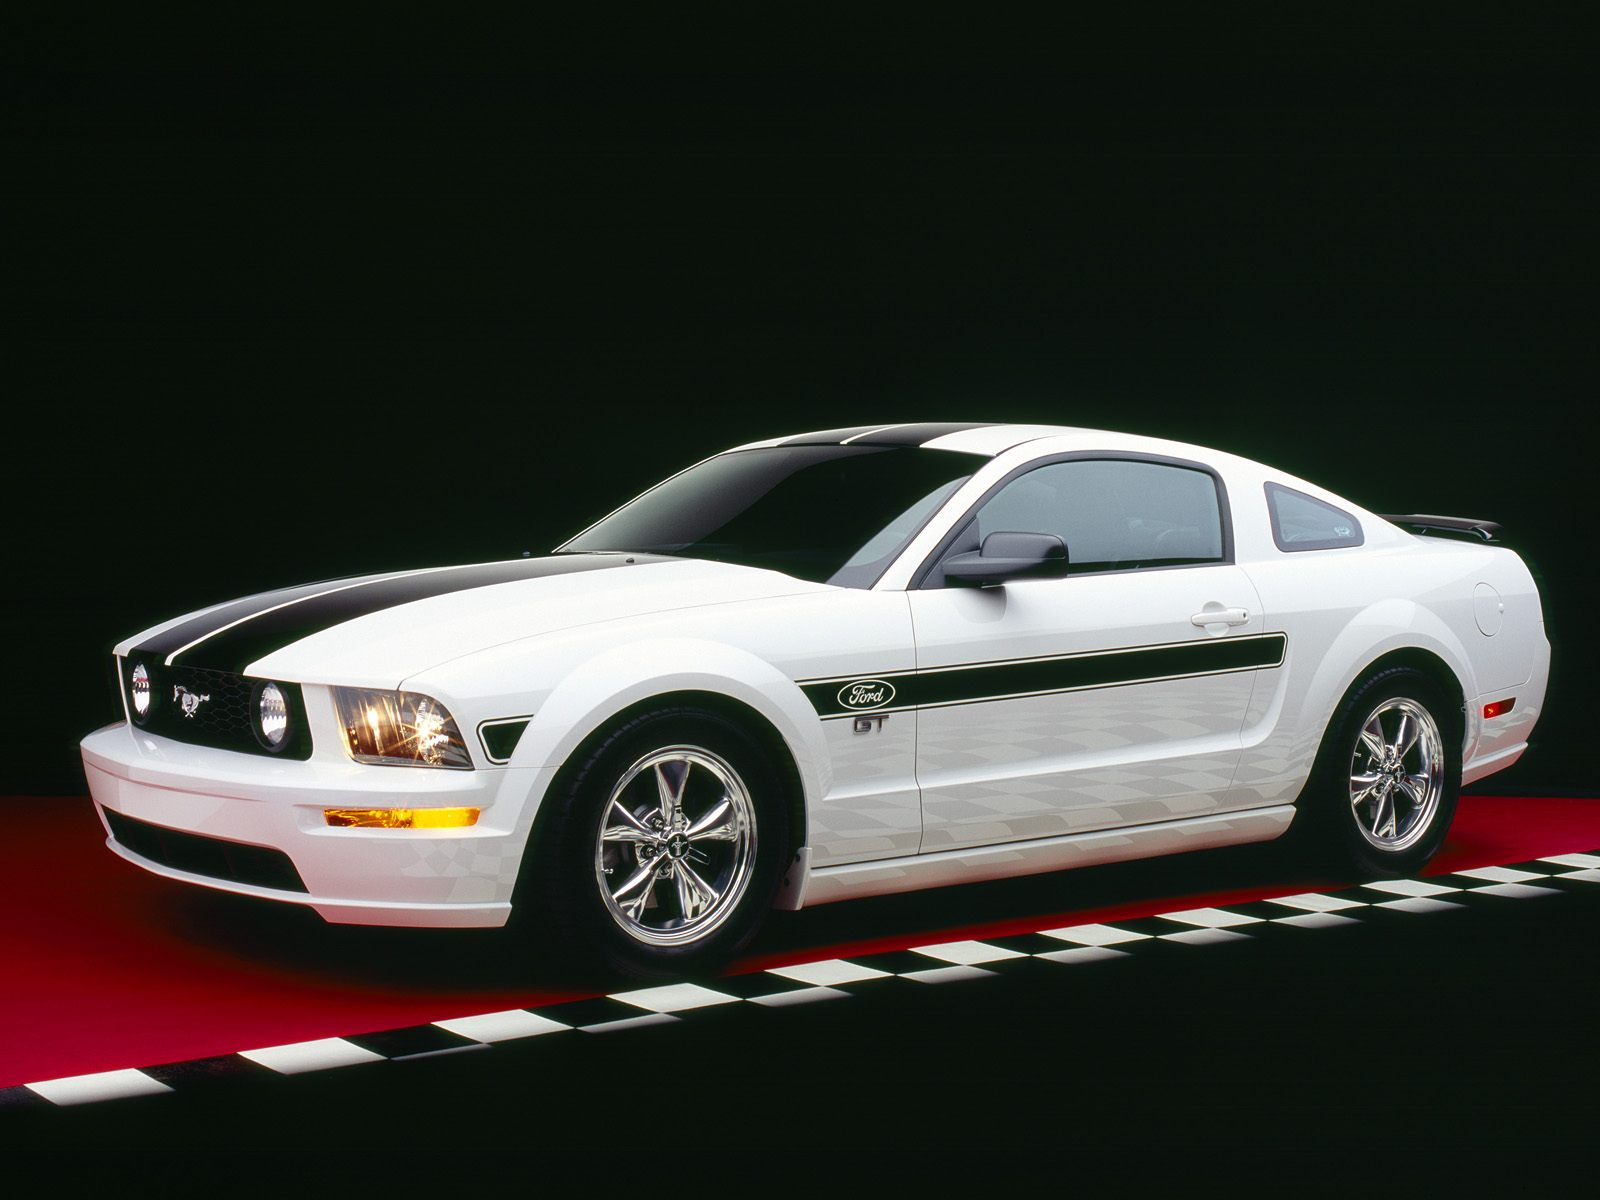 2005 ford mustang wallpaper: